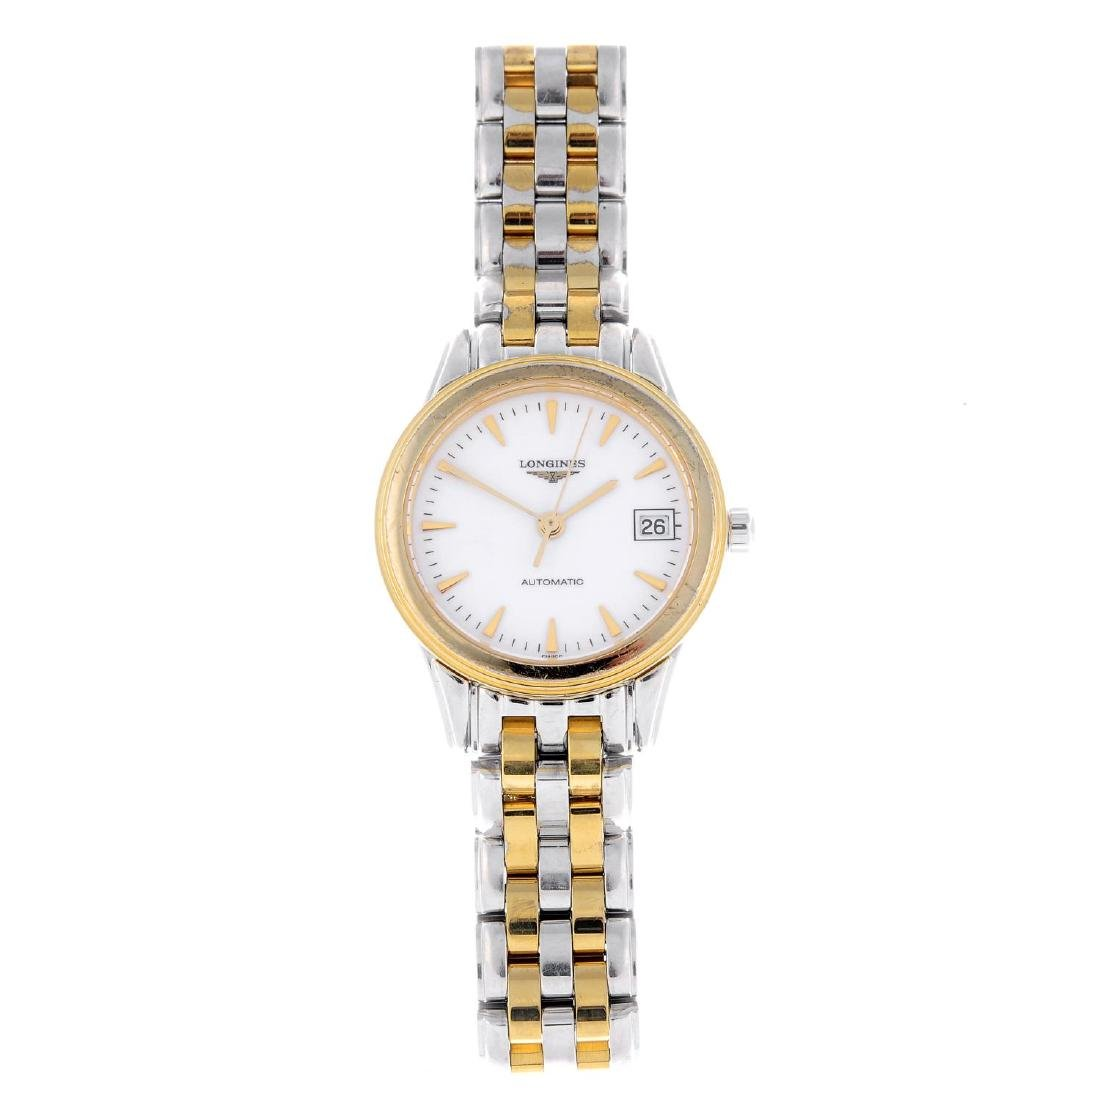 CURRENT MODEL: LONGINES - a lady's Flagship bracelet